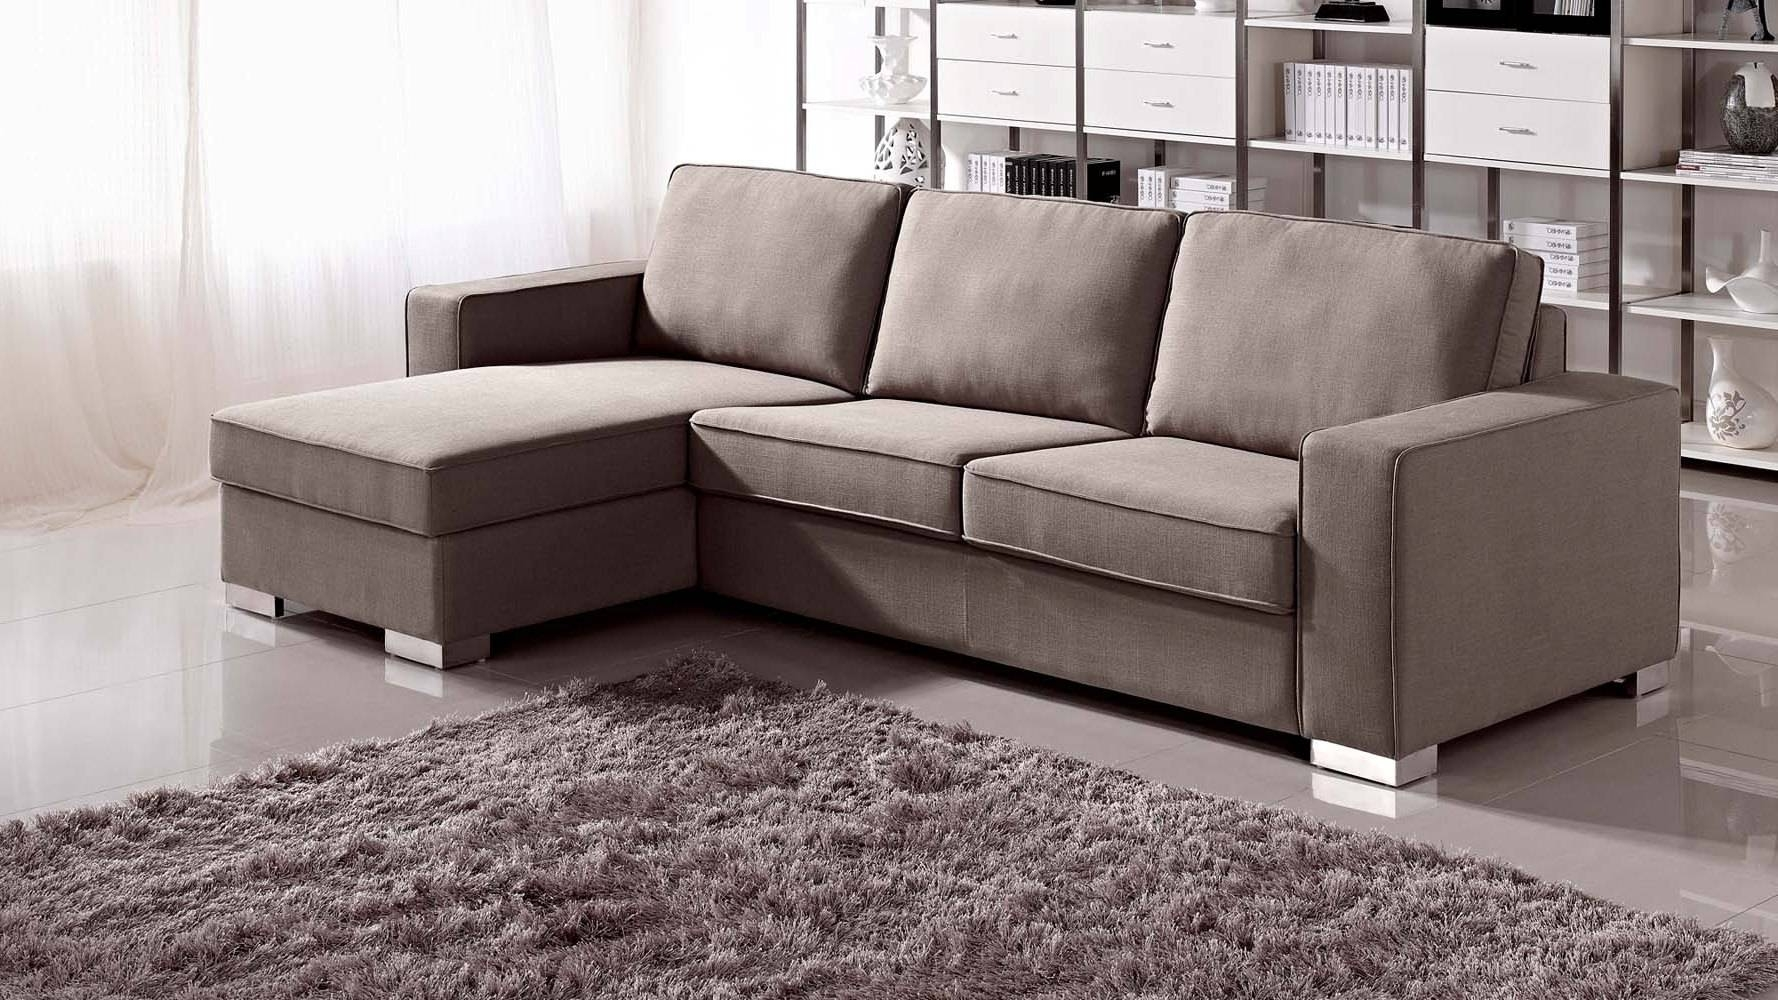 Sectional Sofas Cheap Full Size Of Sofas Rooms To Go Sectional